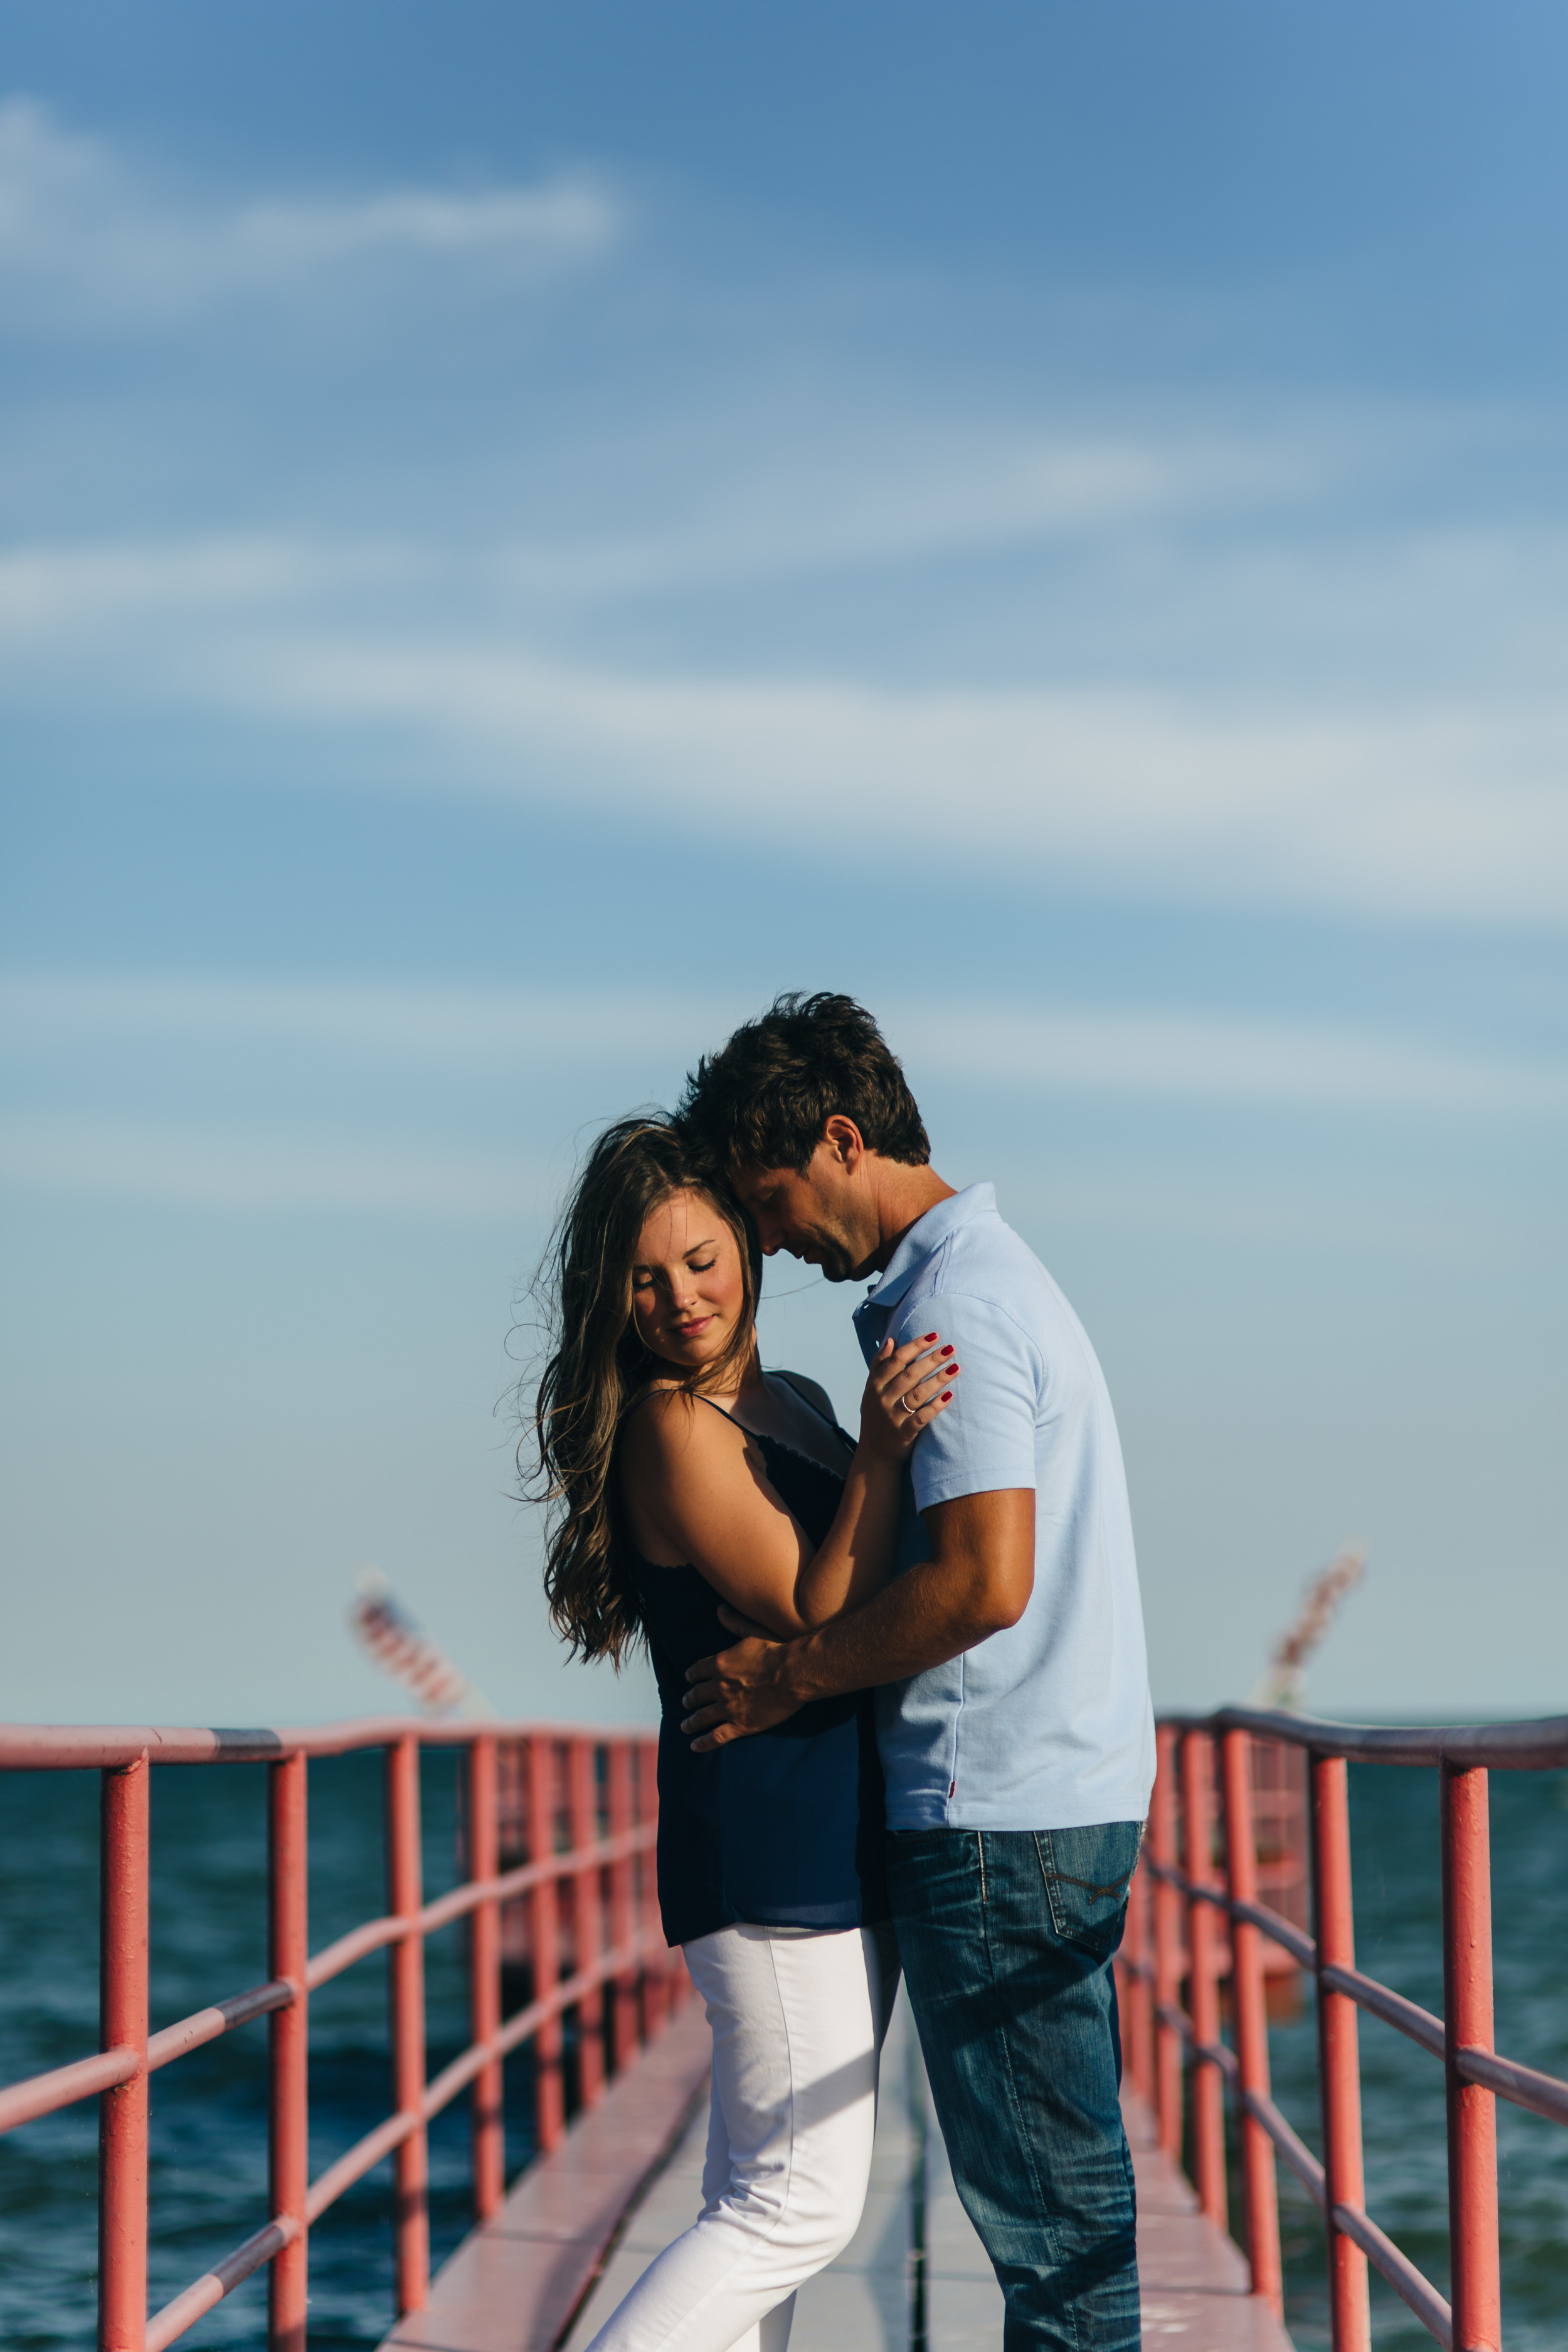 Engagement session by Brest Bay in Monroe, Michigan.